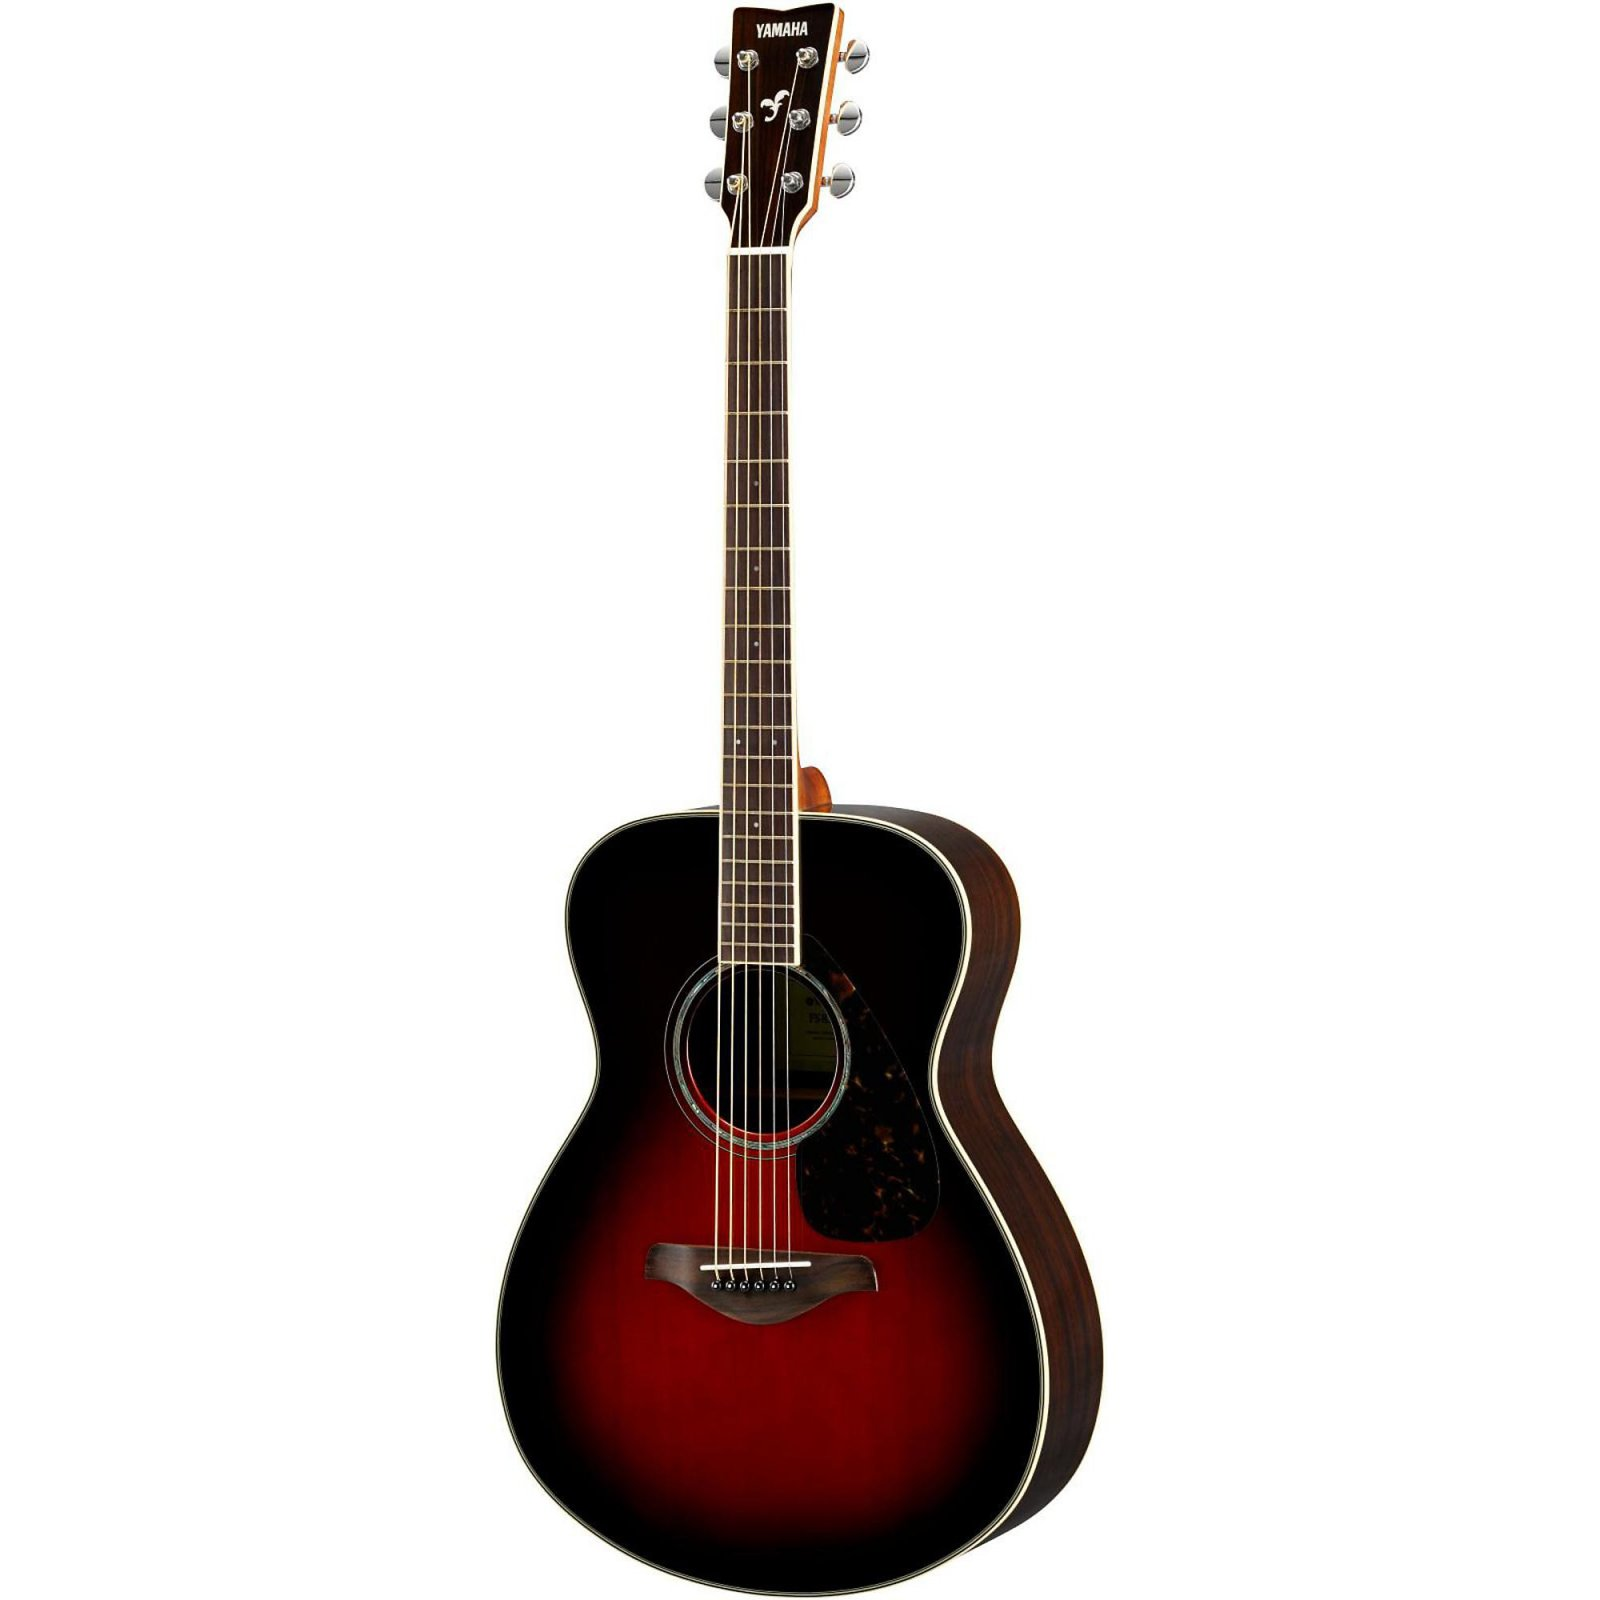 Yamaha FS830 Solid Top Small Body Acoustic Guitar-Sitka Spruce Top, Rosewood B/S -Tobacco Sunburst